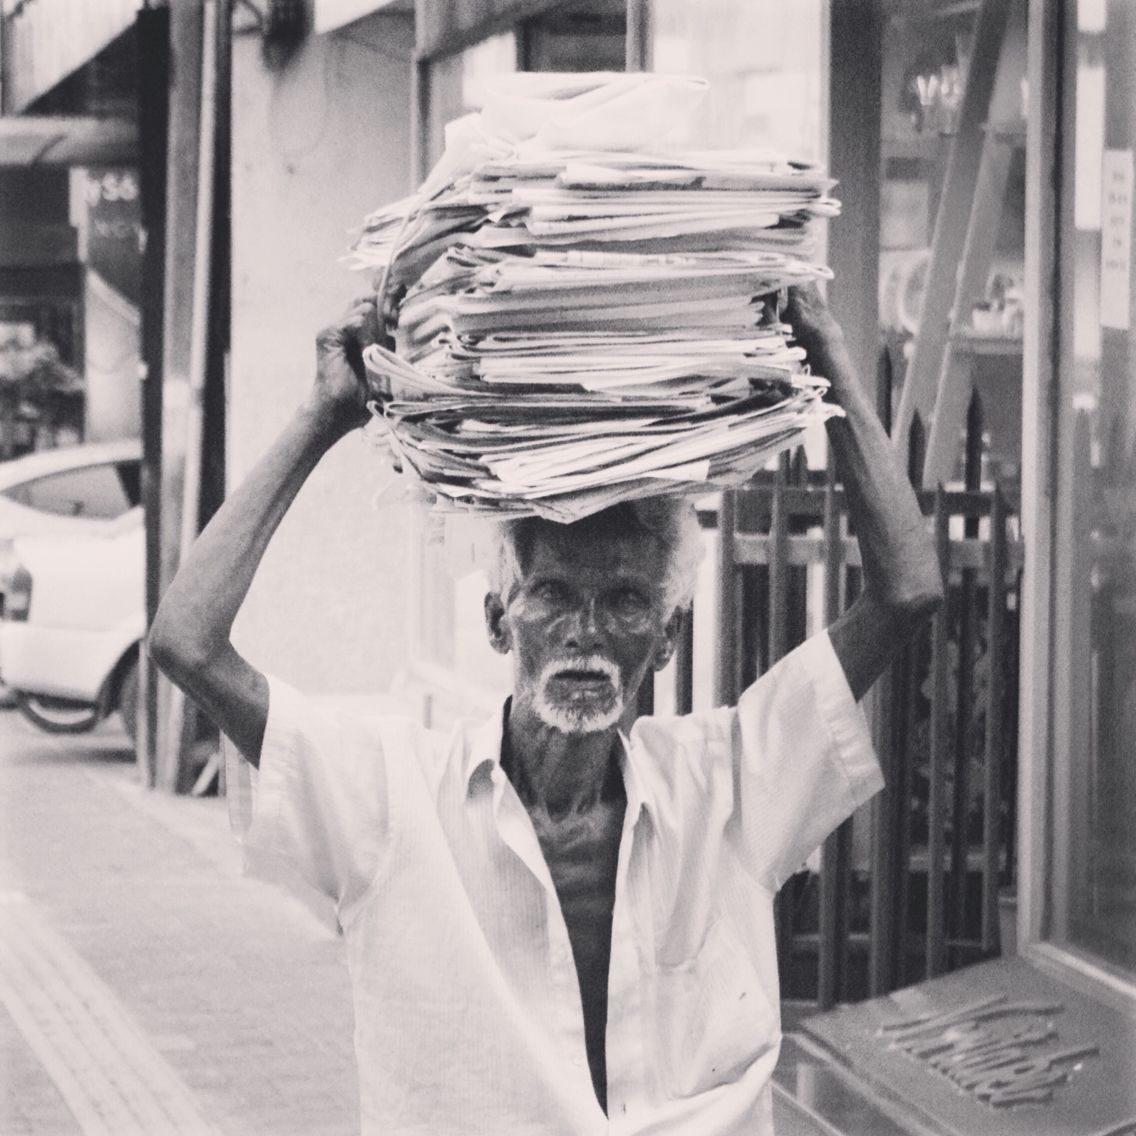 A old man and his newspapers in Colombo